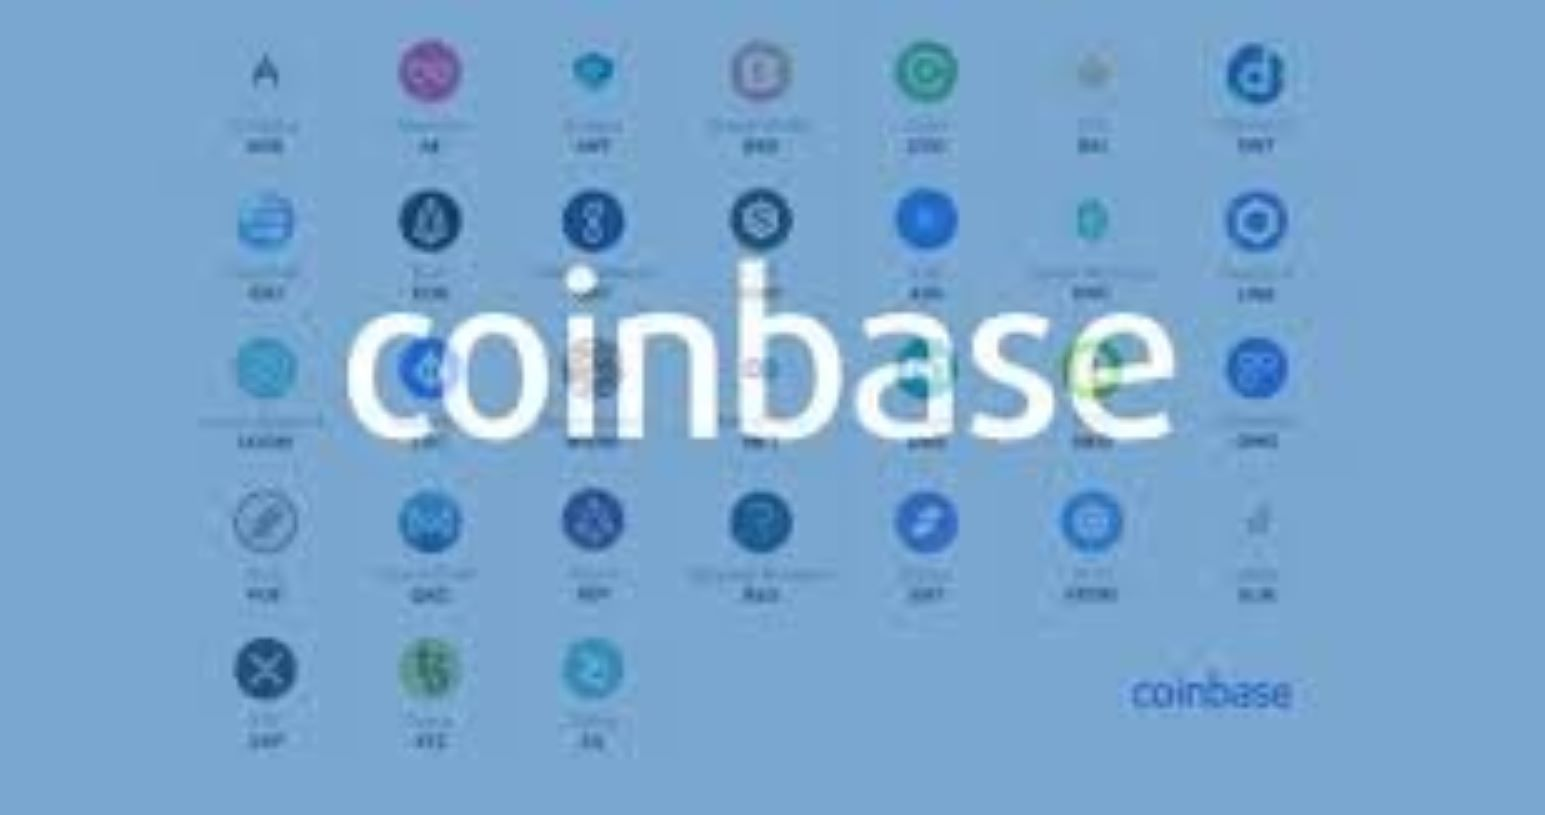 Coinbase wants to make it easier for new crypto <bold>projects</bold> to be listed